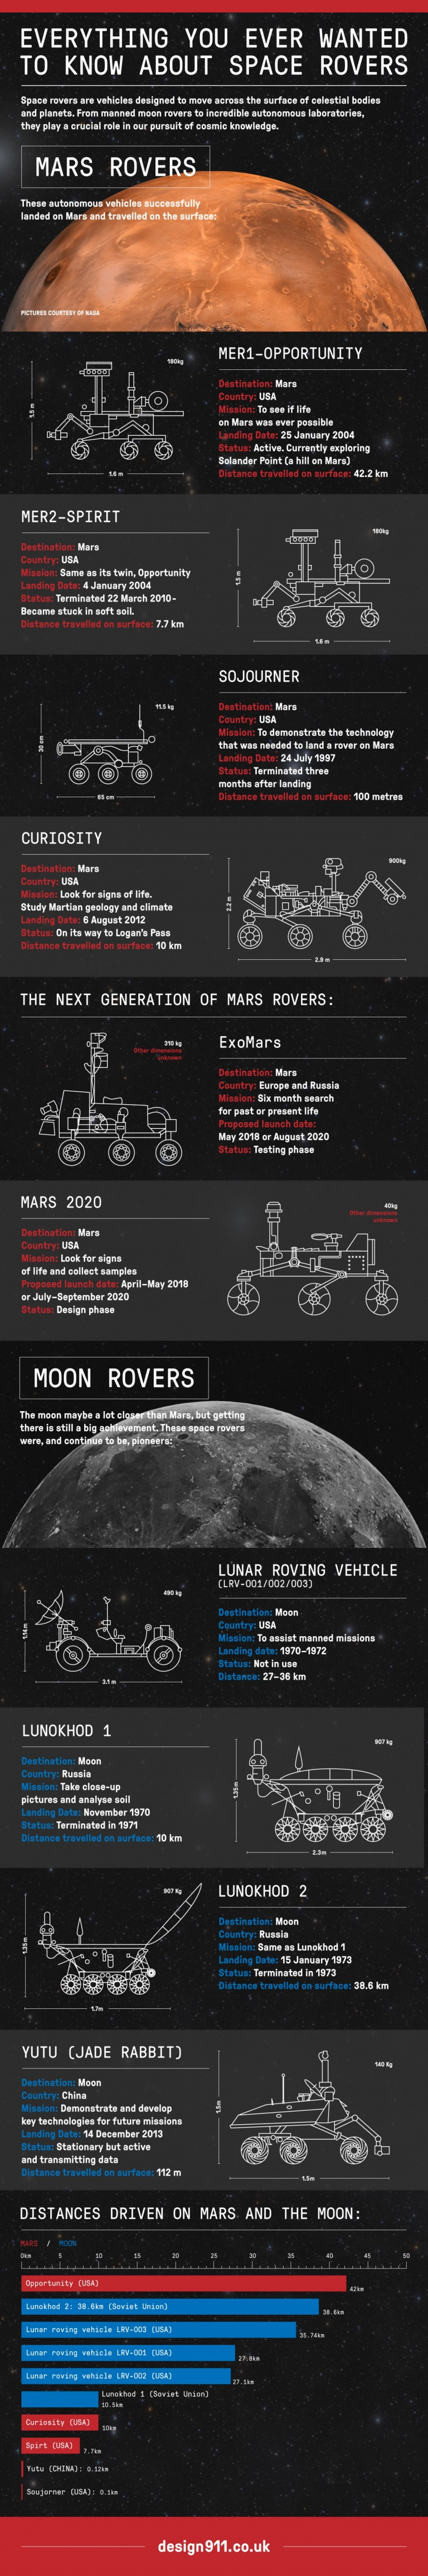 Everything You Ever Wanted To Know About Space Rovers